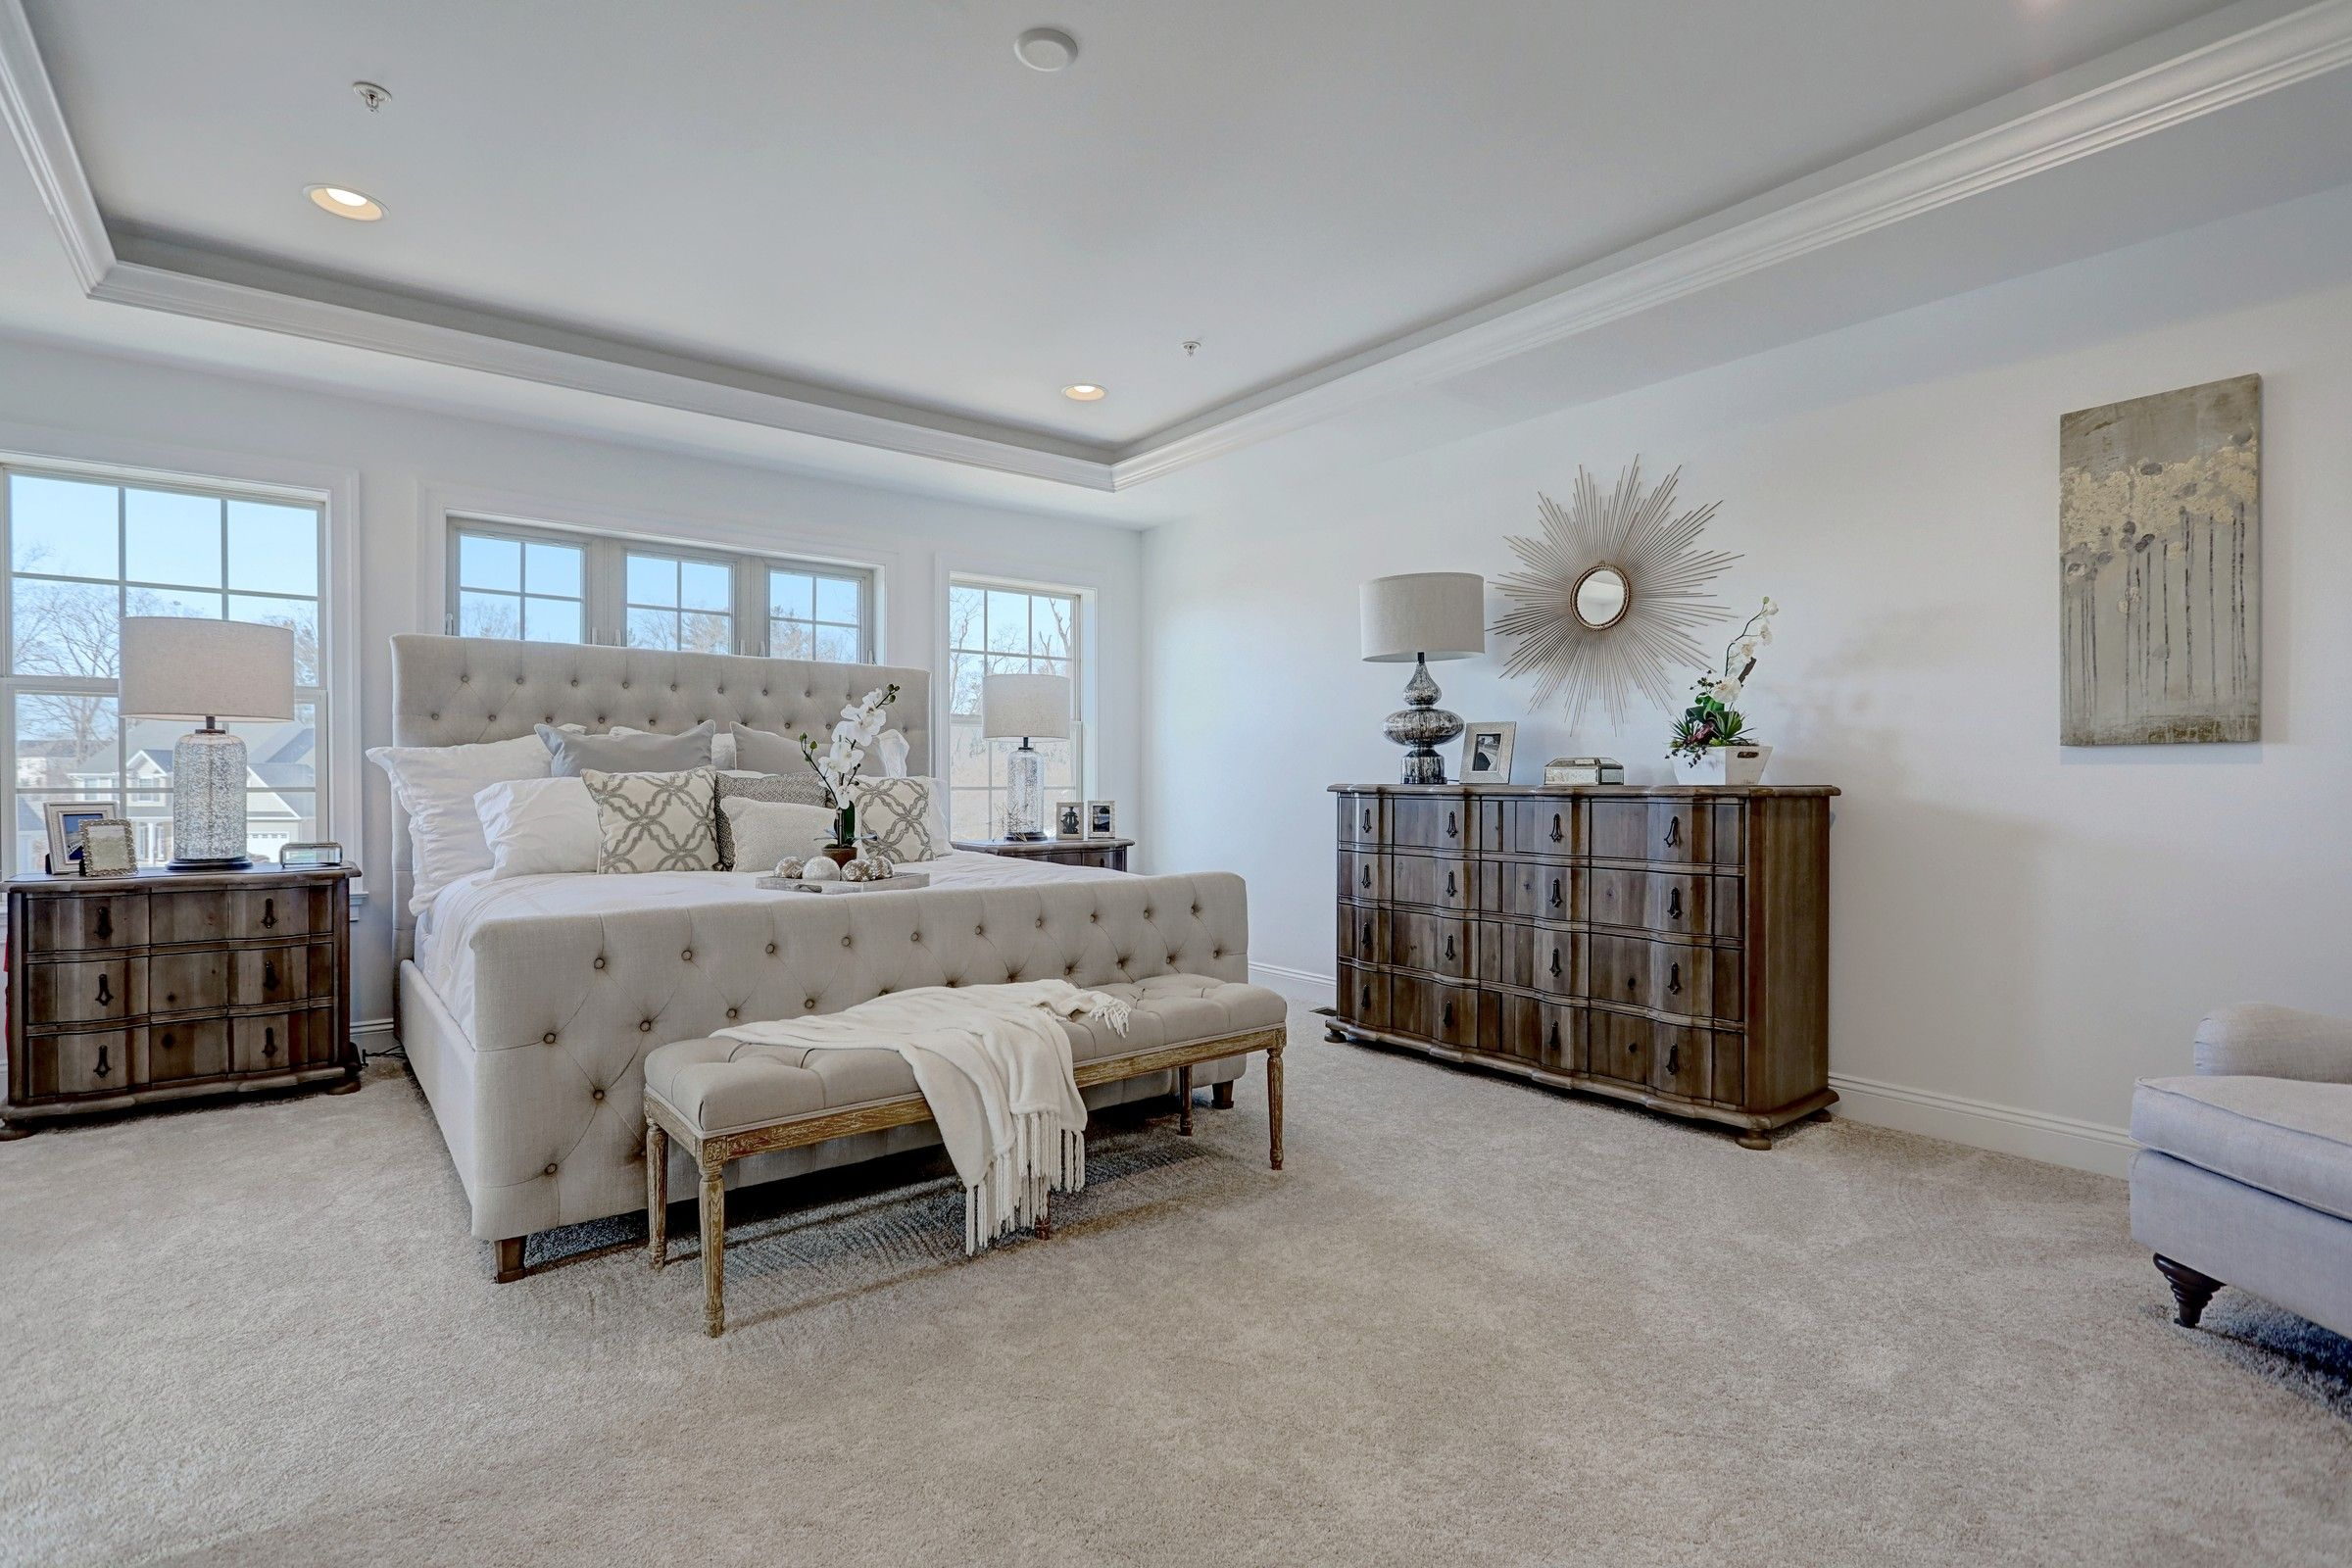 Bedroom featured in the Ethan Heritage By Keystone Custom Homes in York, PA